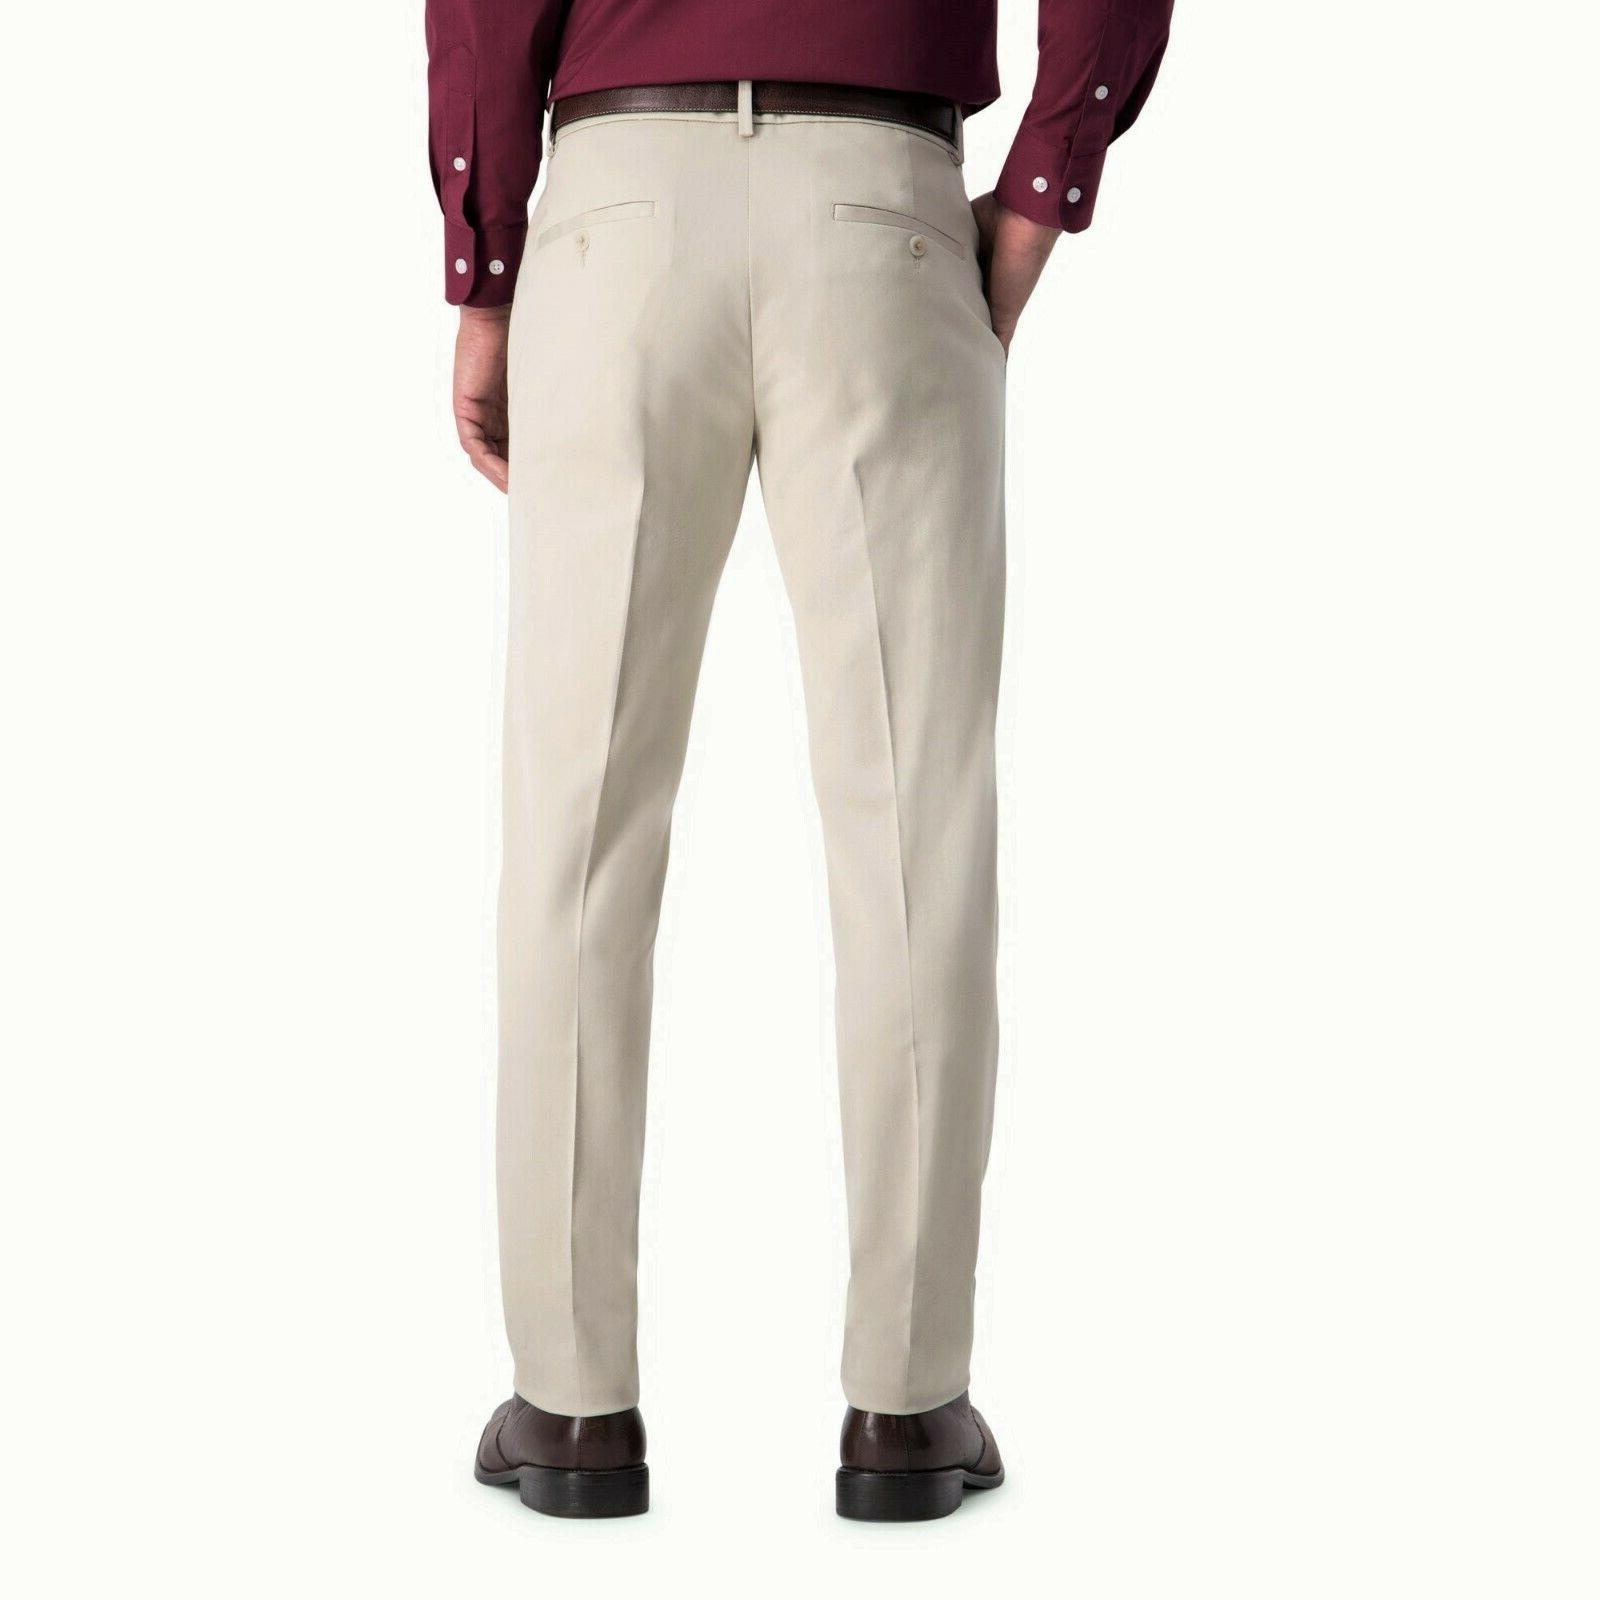 Men's Slim-Fit Premium No Iron Khaki Pants,